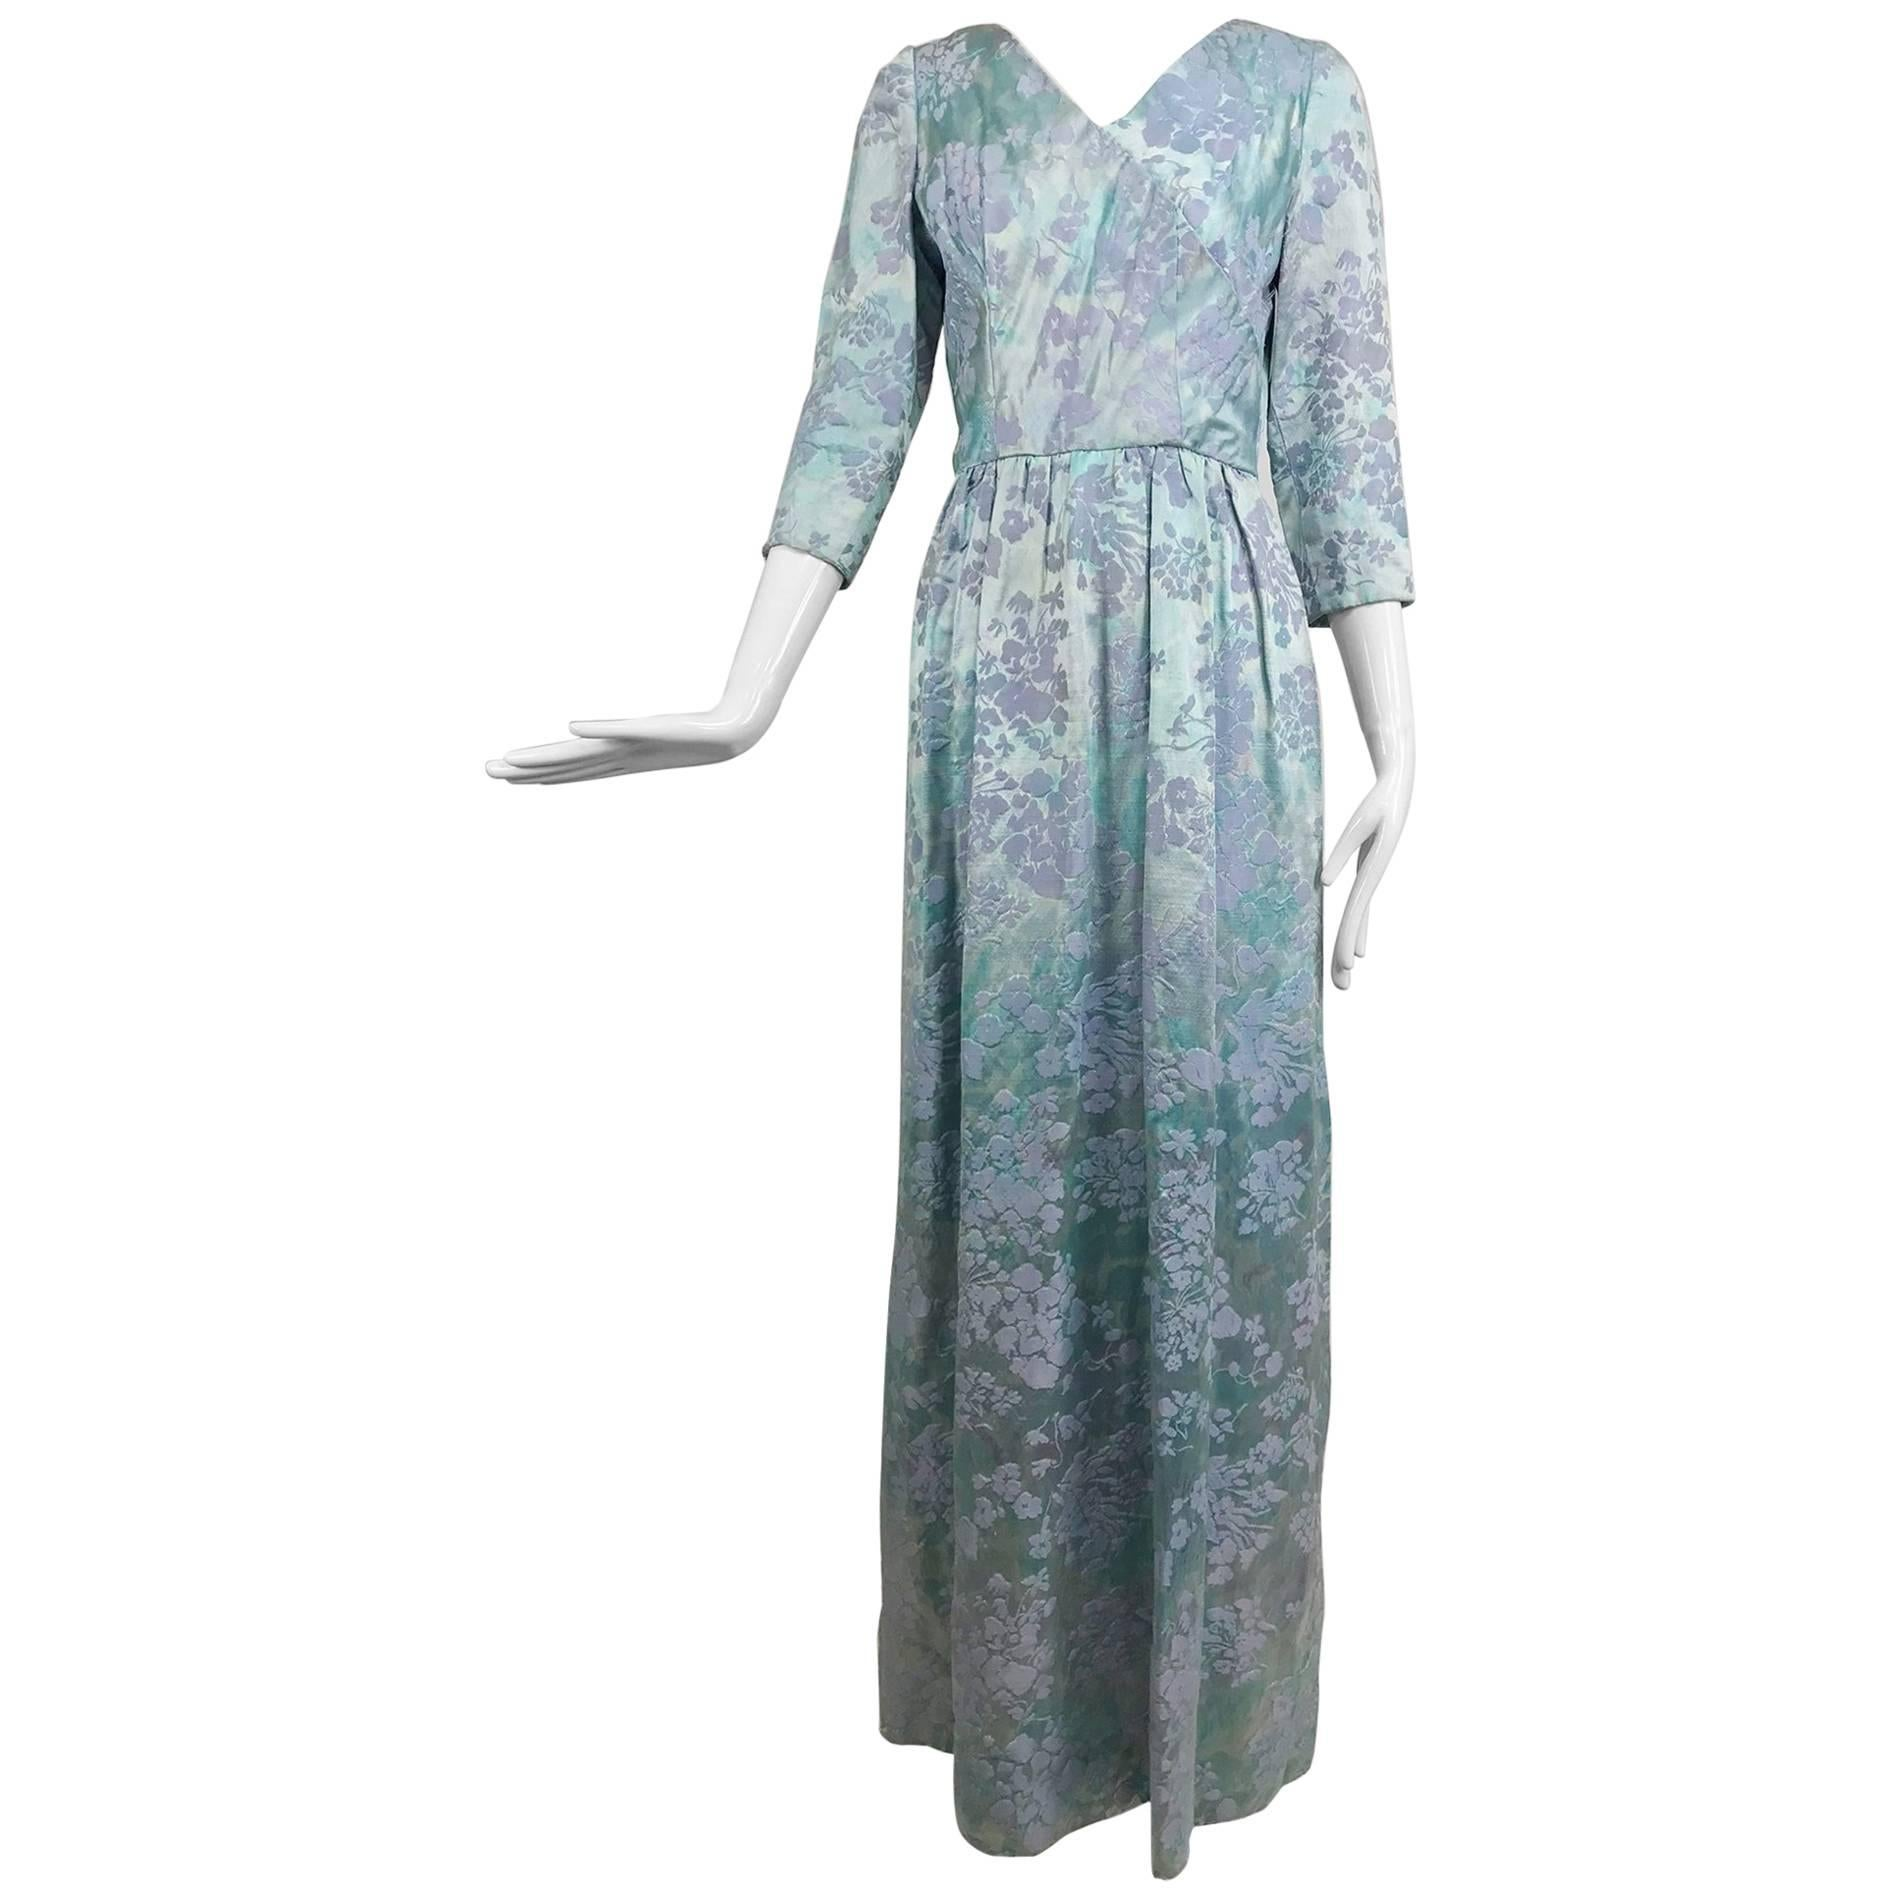 Mignon heavily beaded evening gown 1950s For Sale at 1stdibs